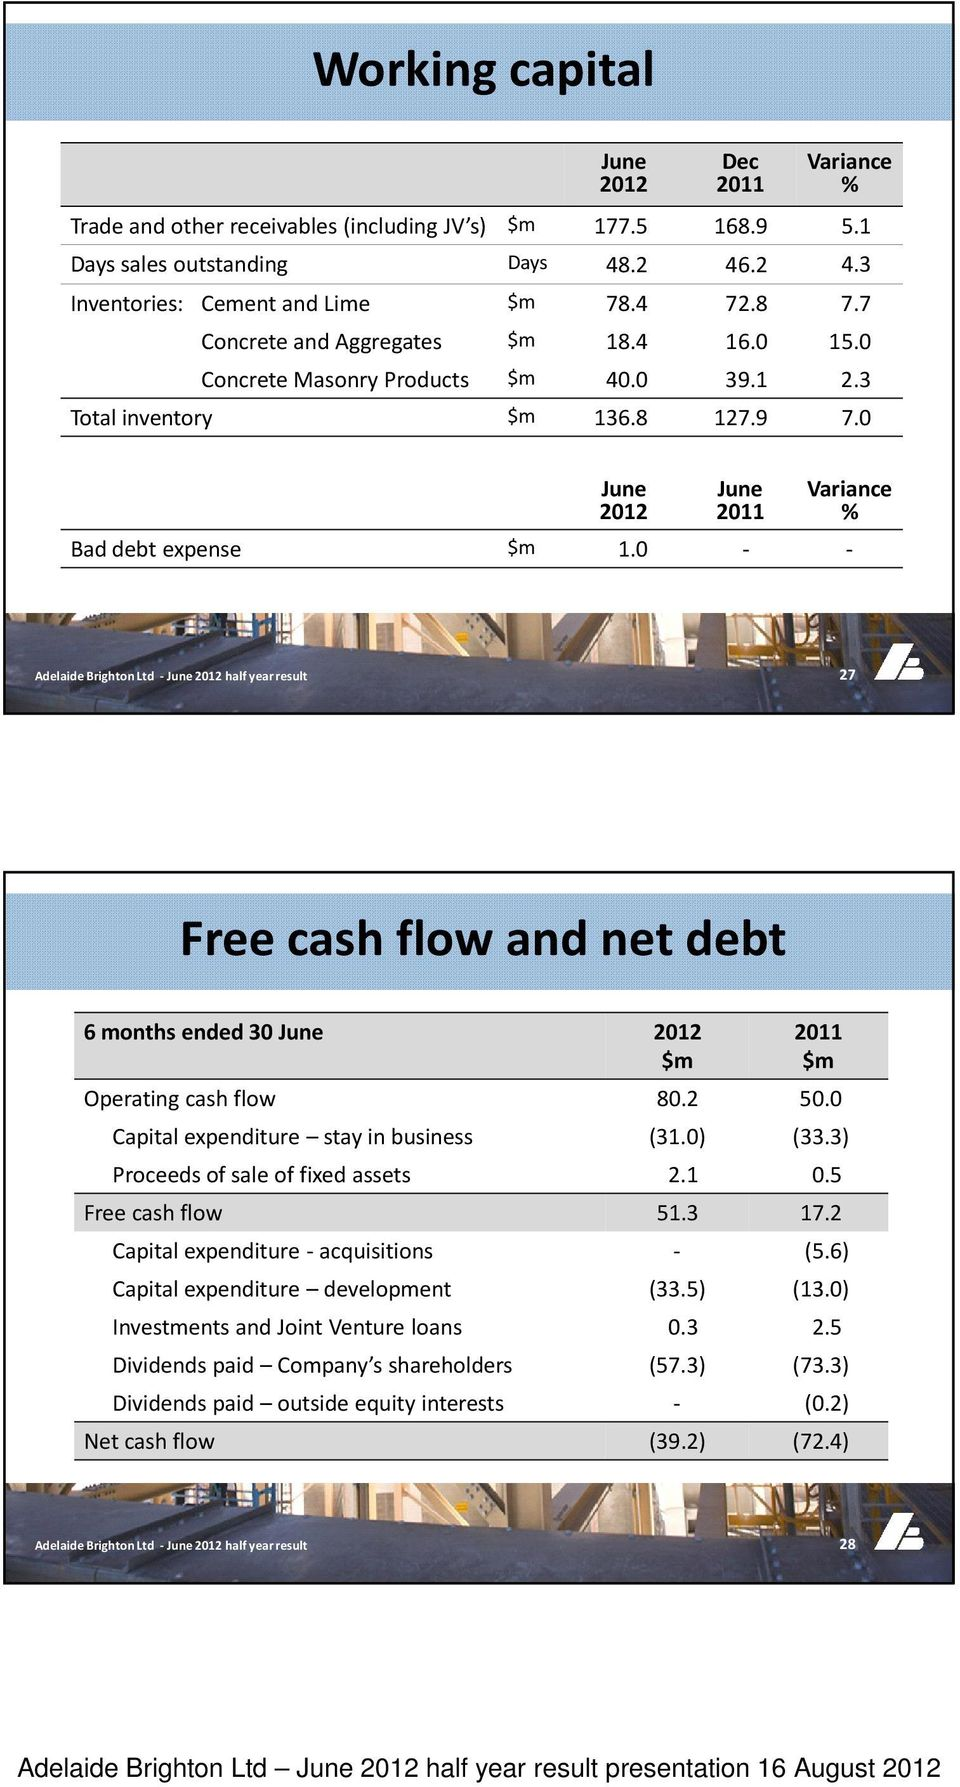 0 - - 27 Free cash flow and net debt 6 months ended 30 June 2012 2011 Operating cash flow 80.2 50.0 Capital expenditure stay in business (31.0) (33.3) Proceeds of sale of fixed assets 2.1 0.